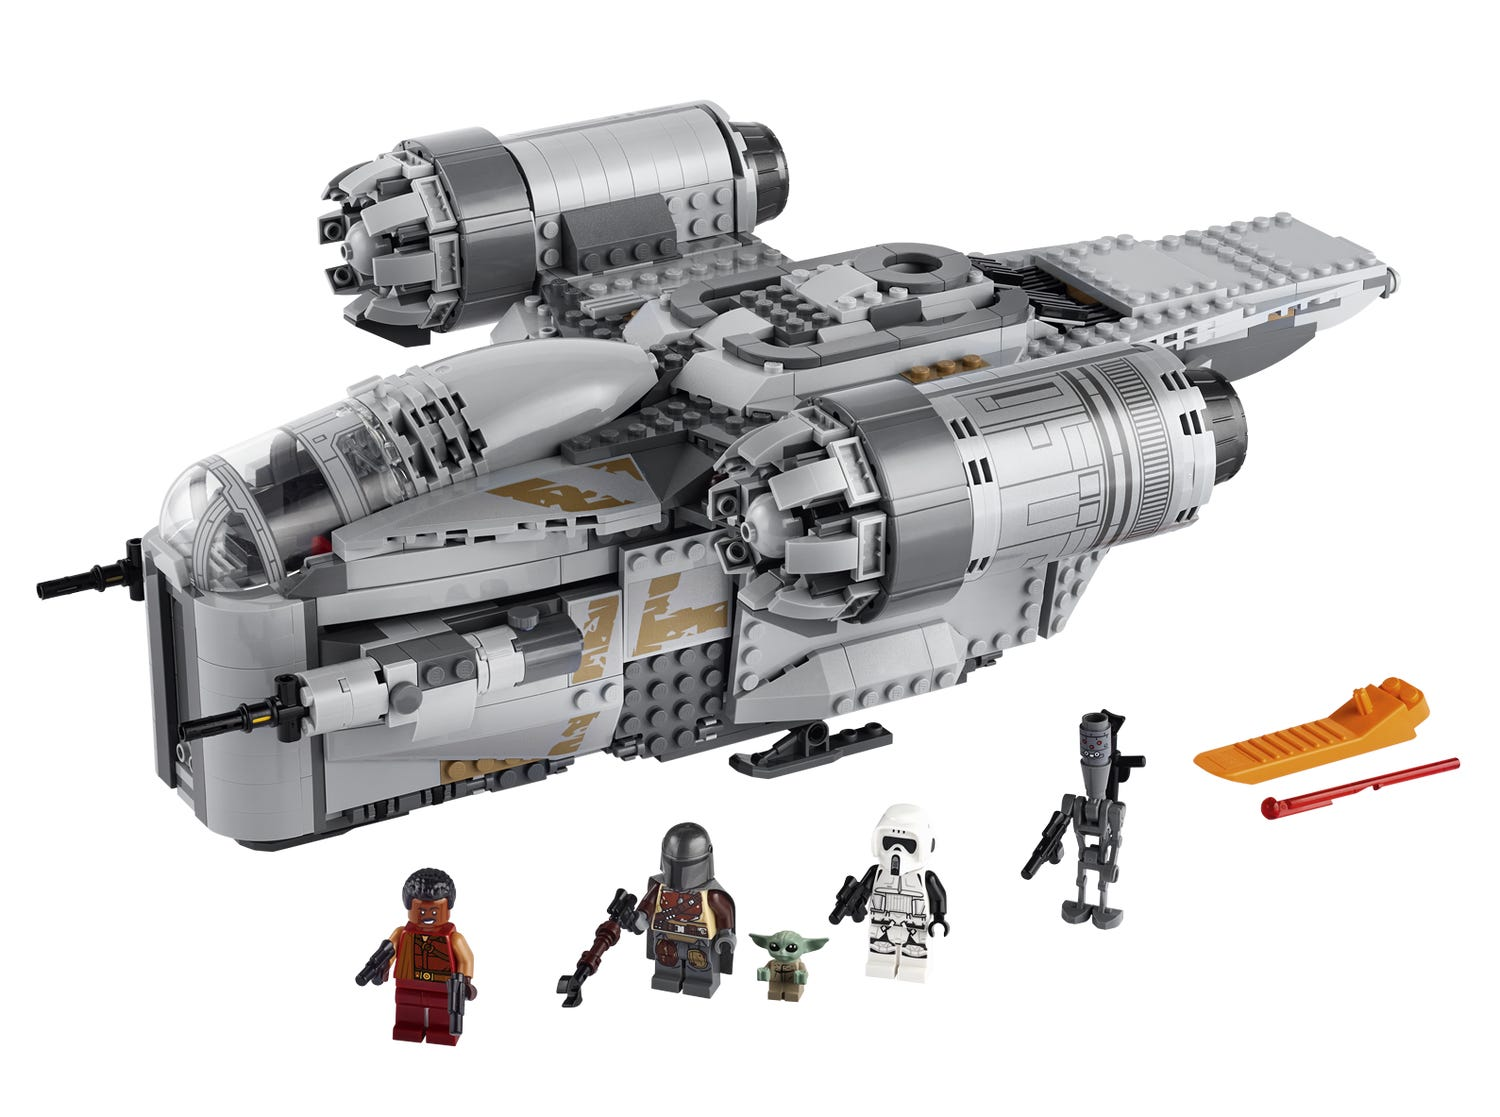 The Razor Crest 75292 Star Wars Buy Online At The Official Lego Shop Us